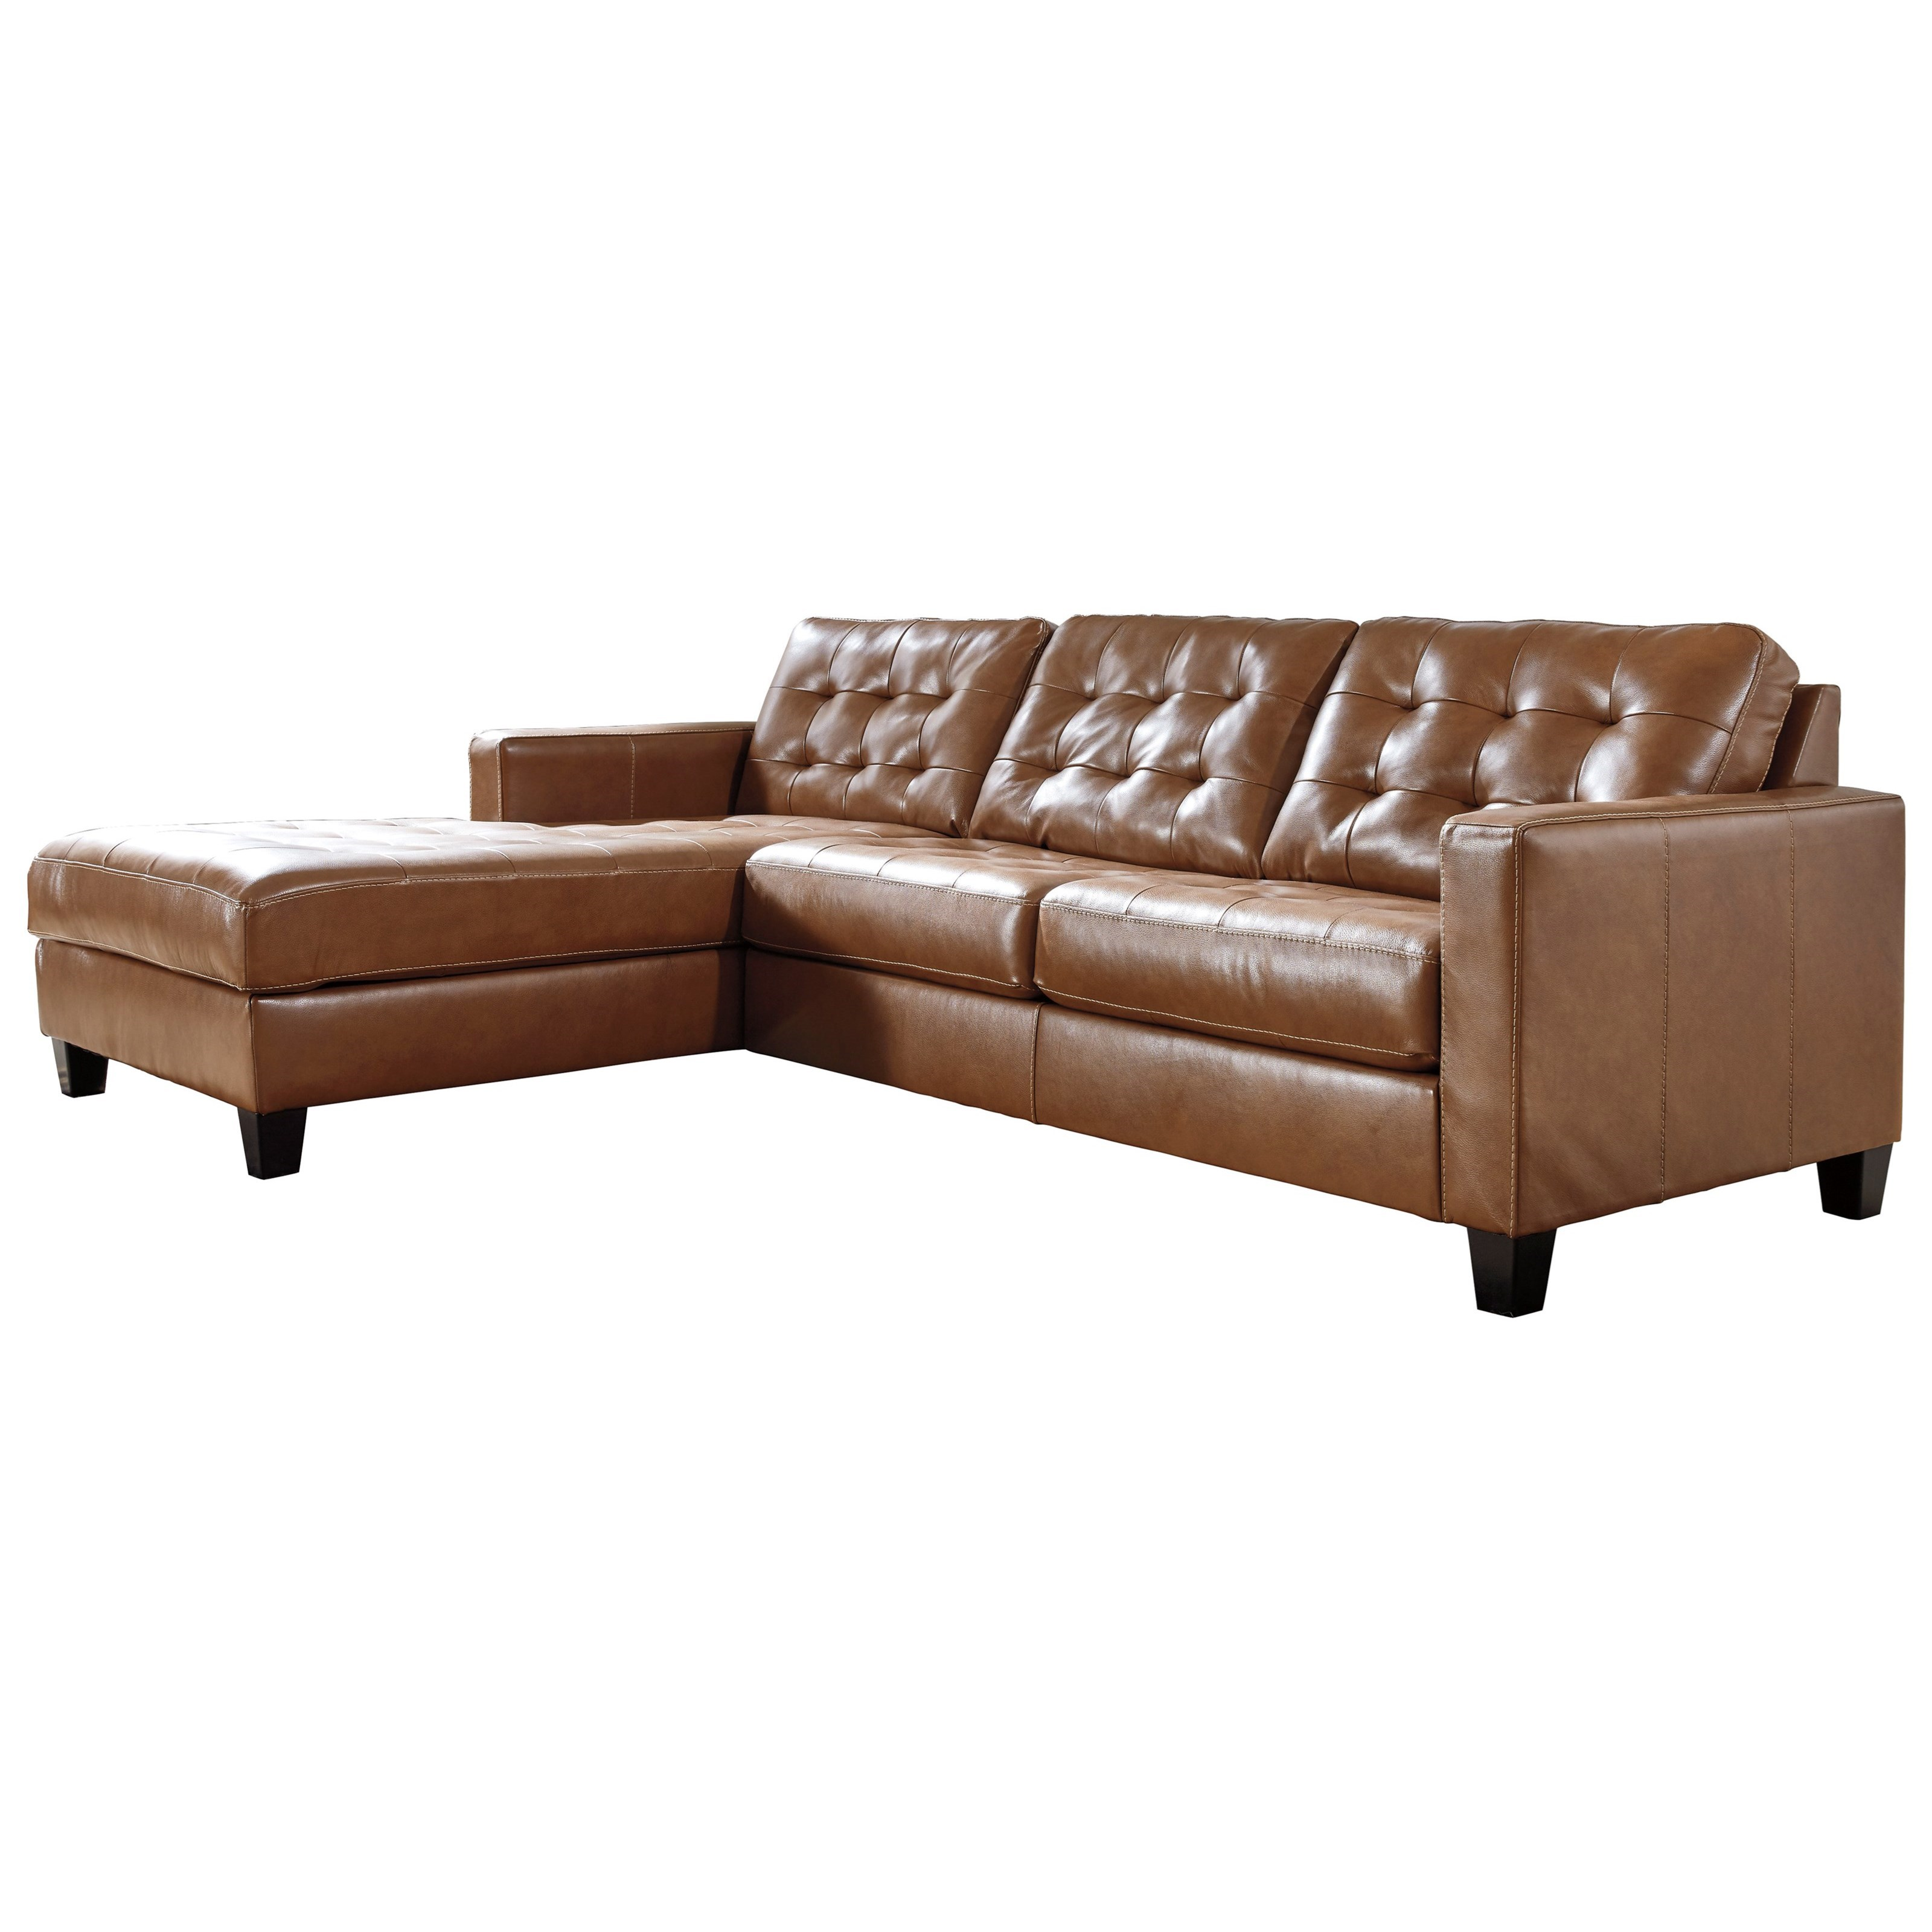 Baskove 2-Piece Sectional by Signature Design by Ashley at Zak's Warehouse Clearance Center